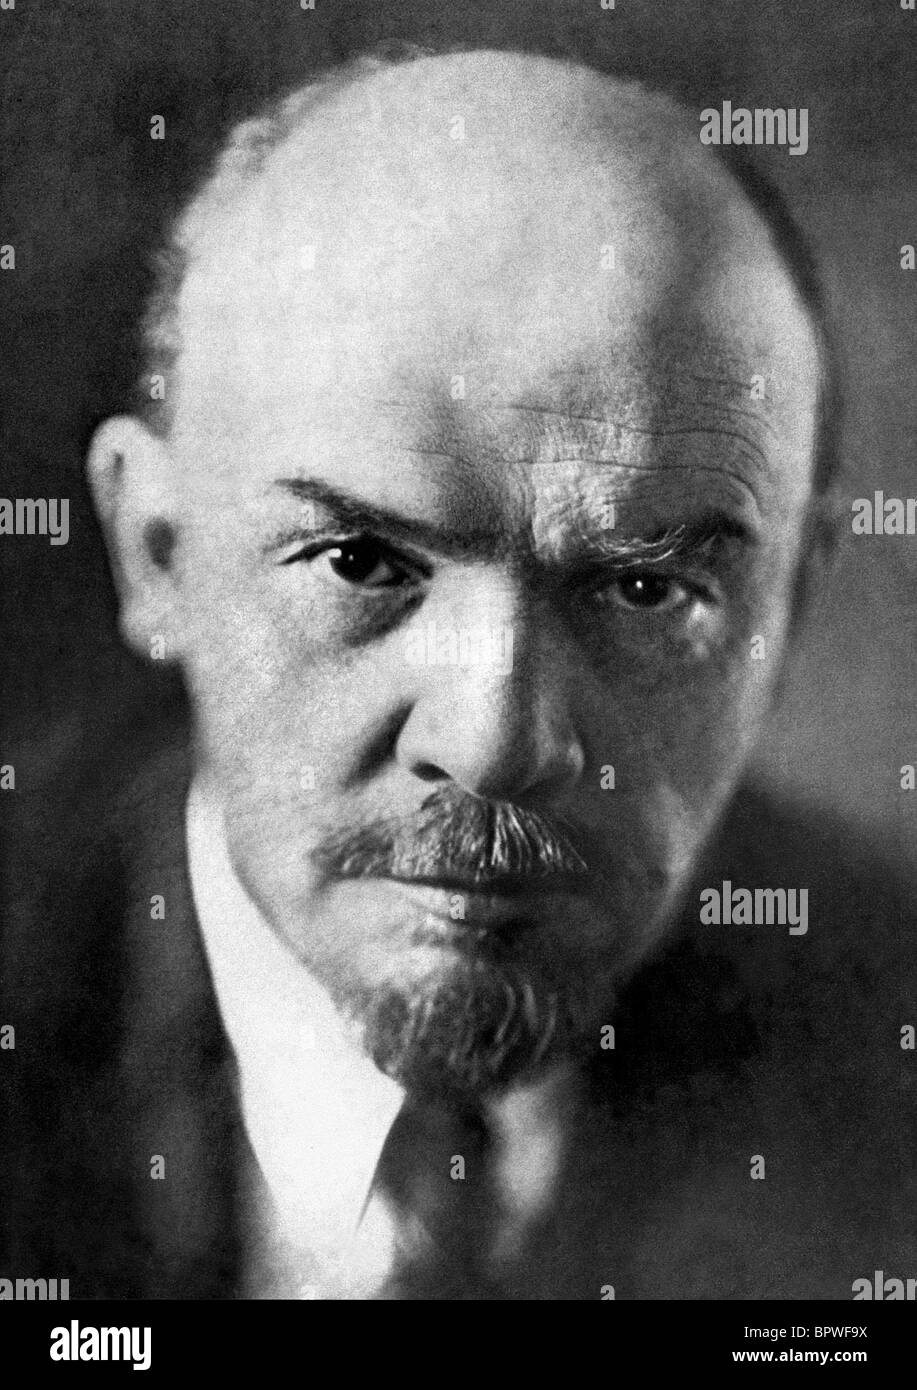 WLADIMIR IIJITSCH LENIN FOUNDER OF THE USSR 02 March 1933 RKO - Stock Image